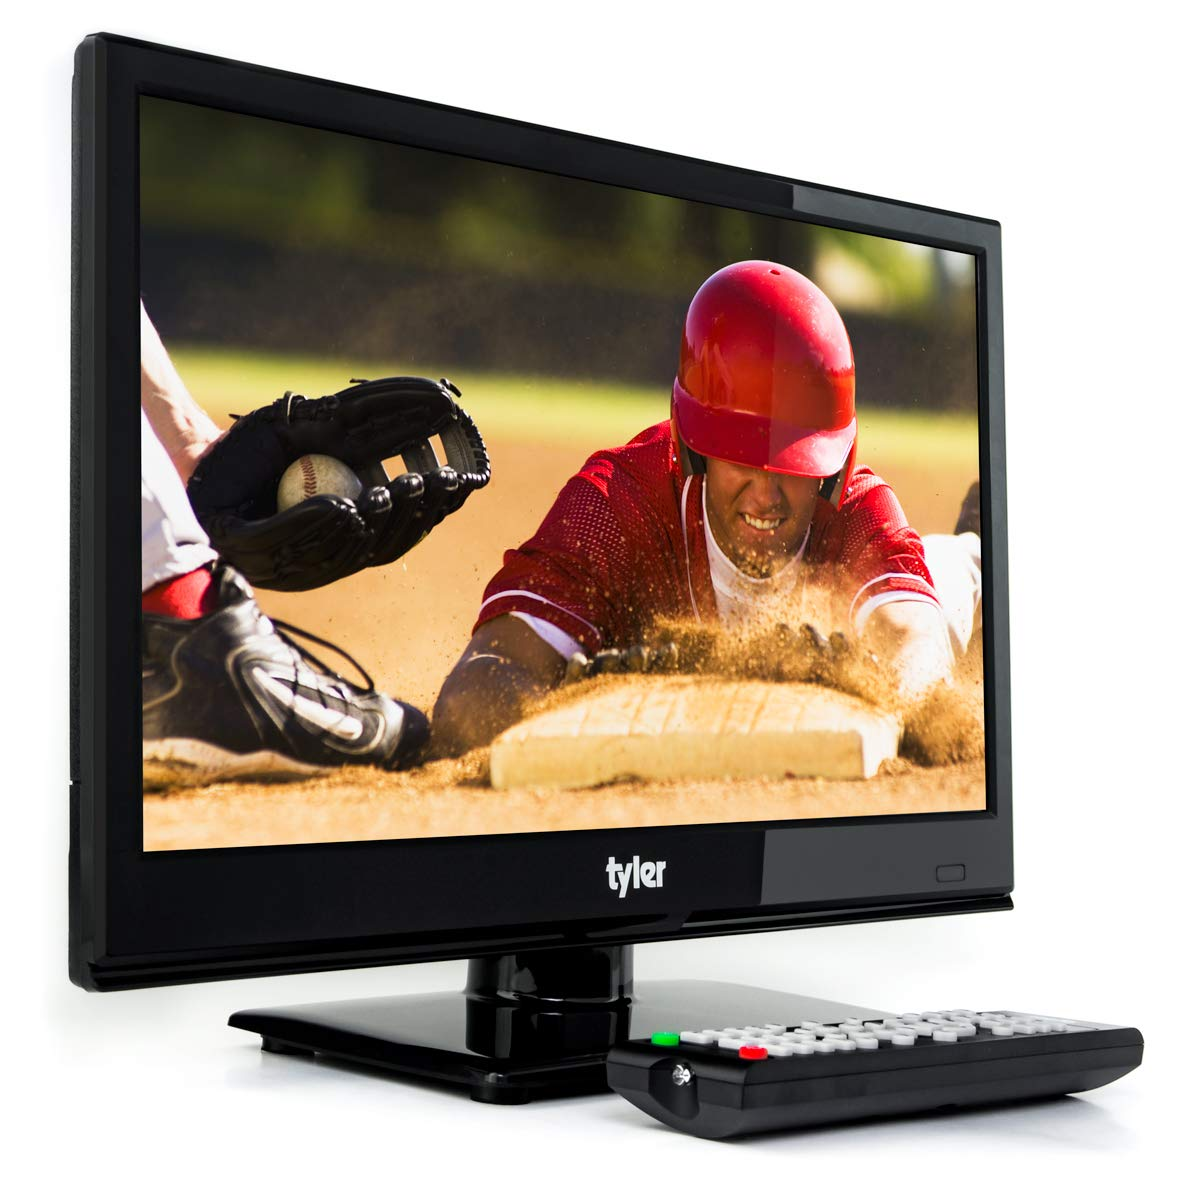 Tyler 15.6-Inch Digital LED Widescreen Television - Full Ultra HD 1080p Monitor Flat Screen TV with Stand - HDMI, USB, VGA and Coaxial Port Input - Wall Mountable - Mac PC - Stereo Speakers - AC/DC